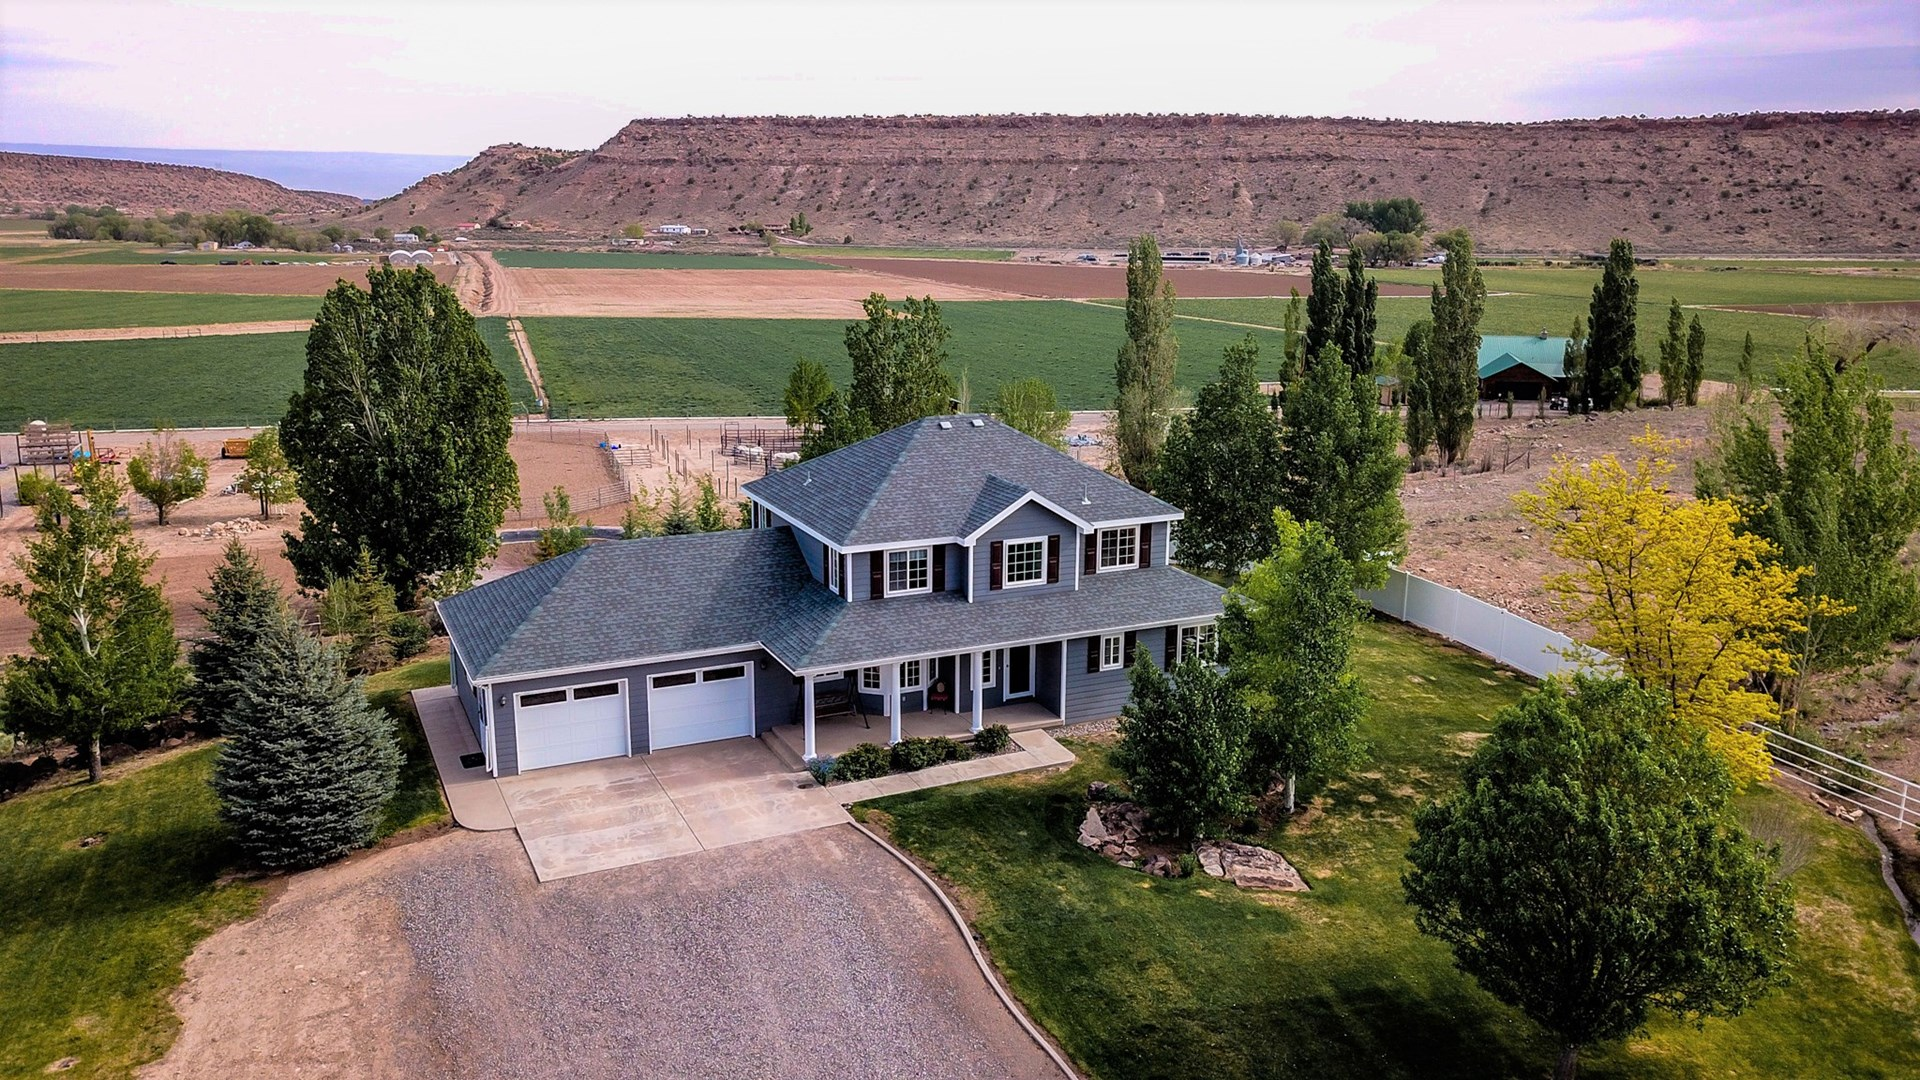 Expired Acreage For Sale Montrose Colorado With Beautiful Home